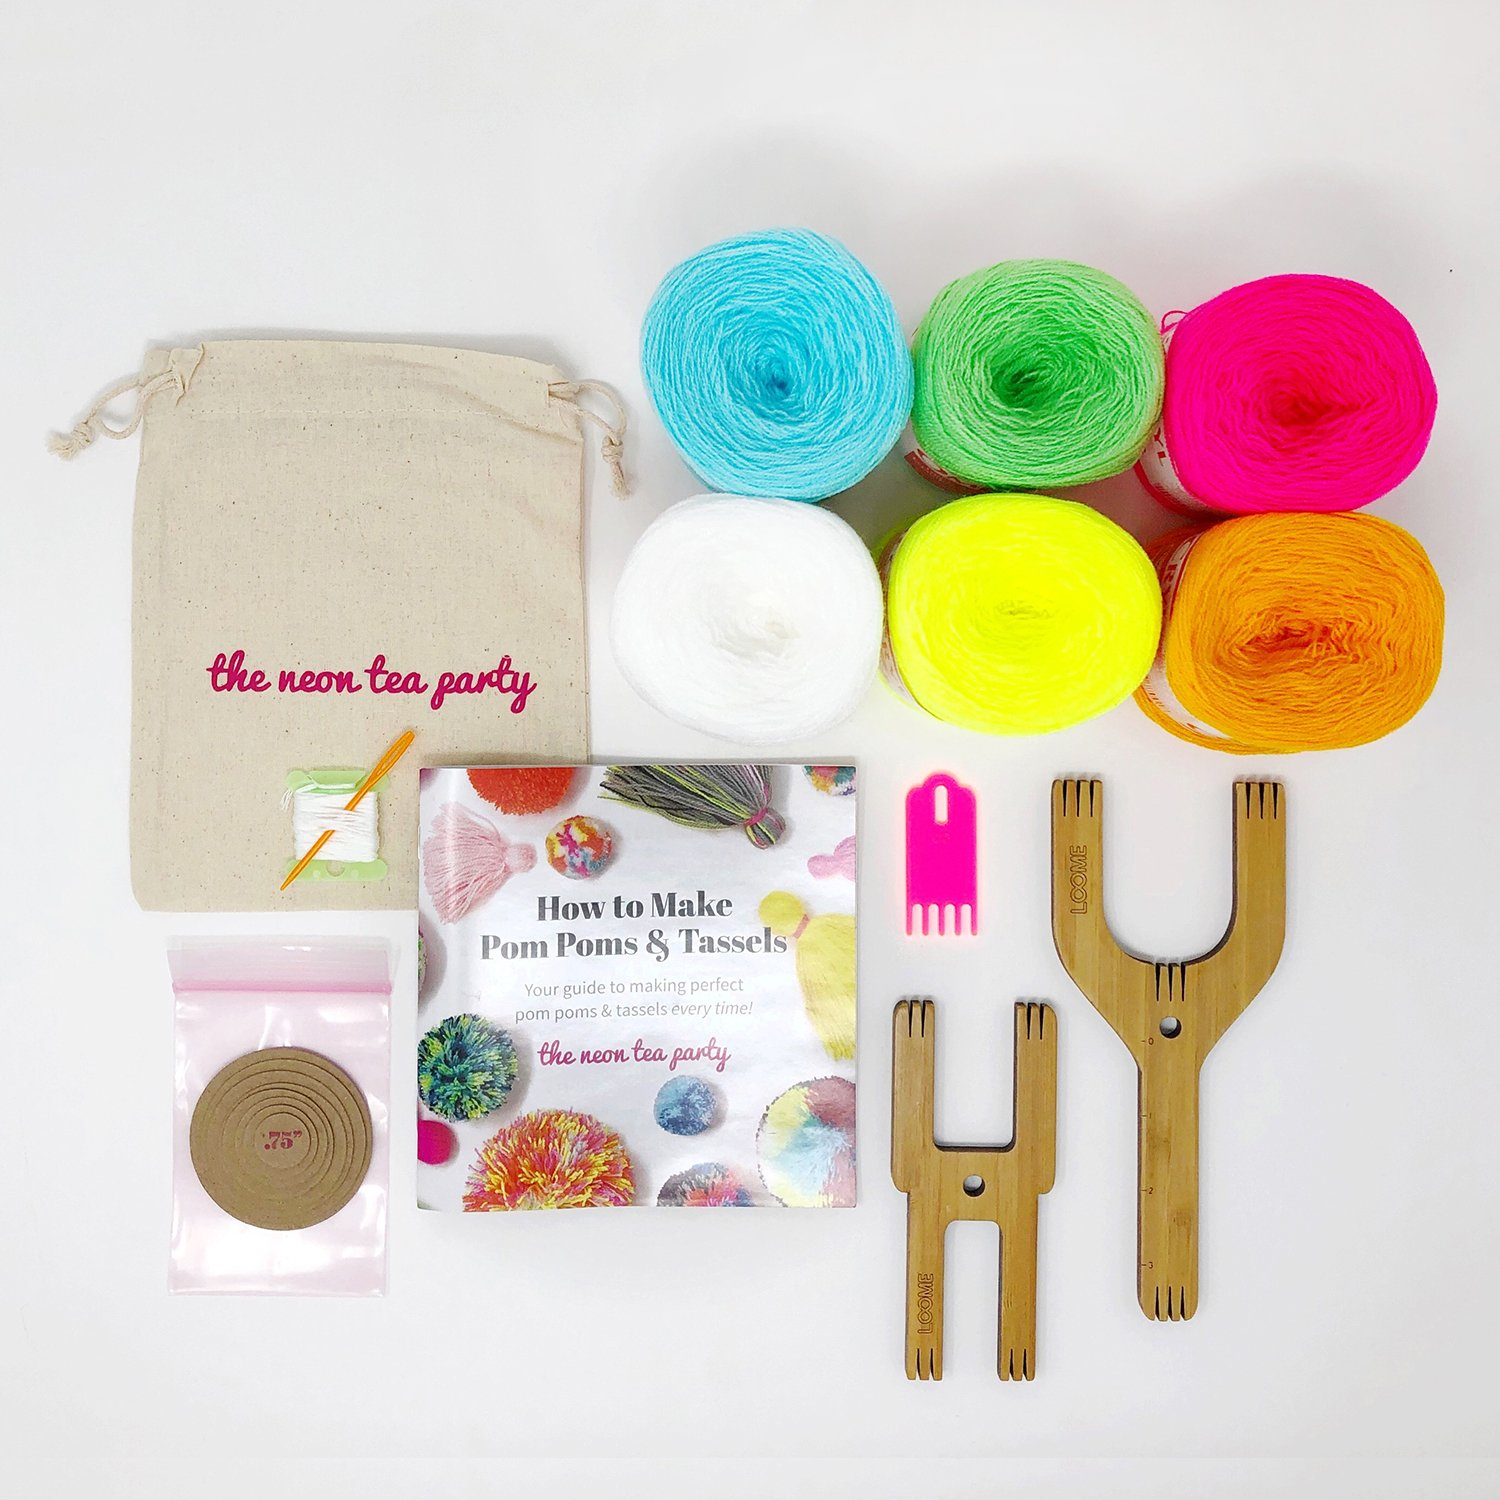 Pom Pom and Tassel Kit - Deluxe - The Neon Tea Party